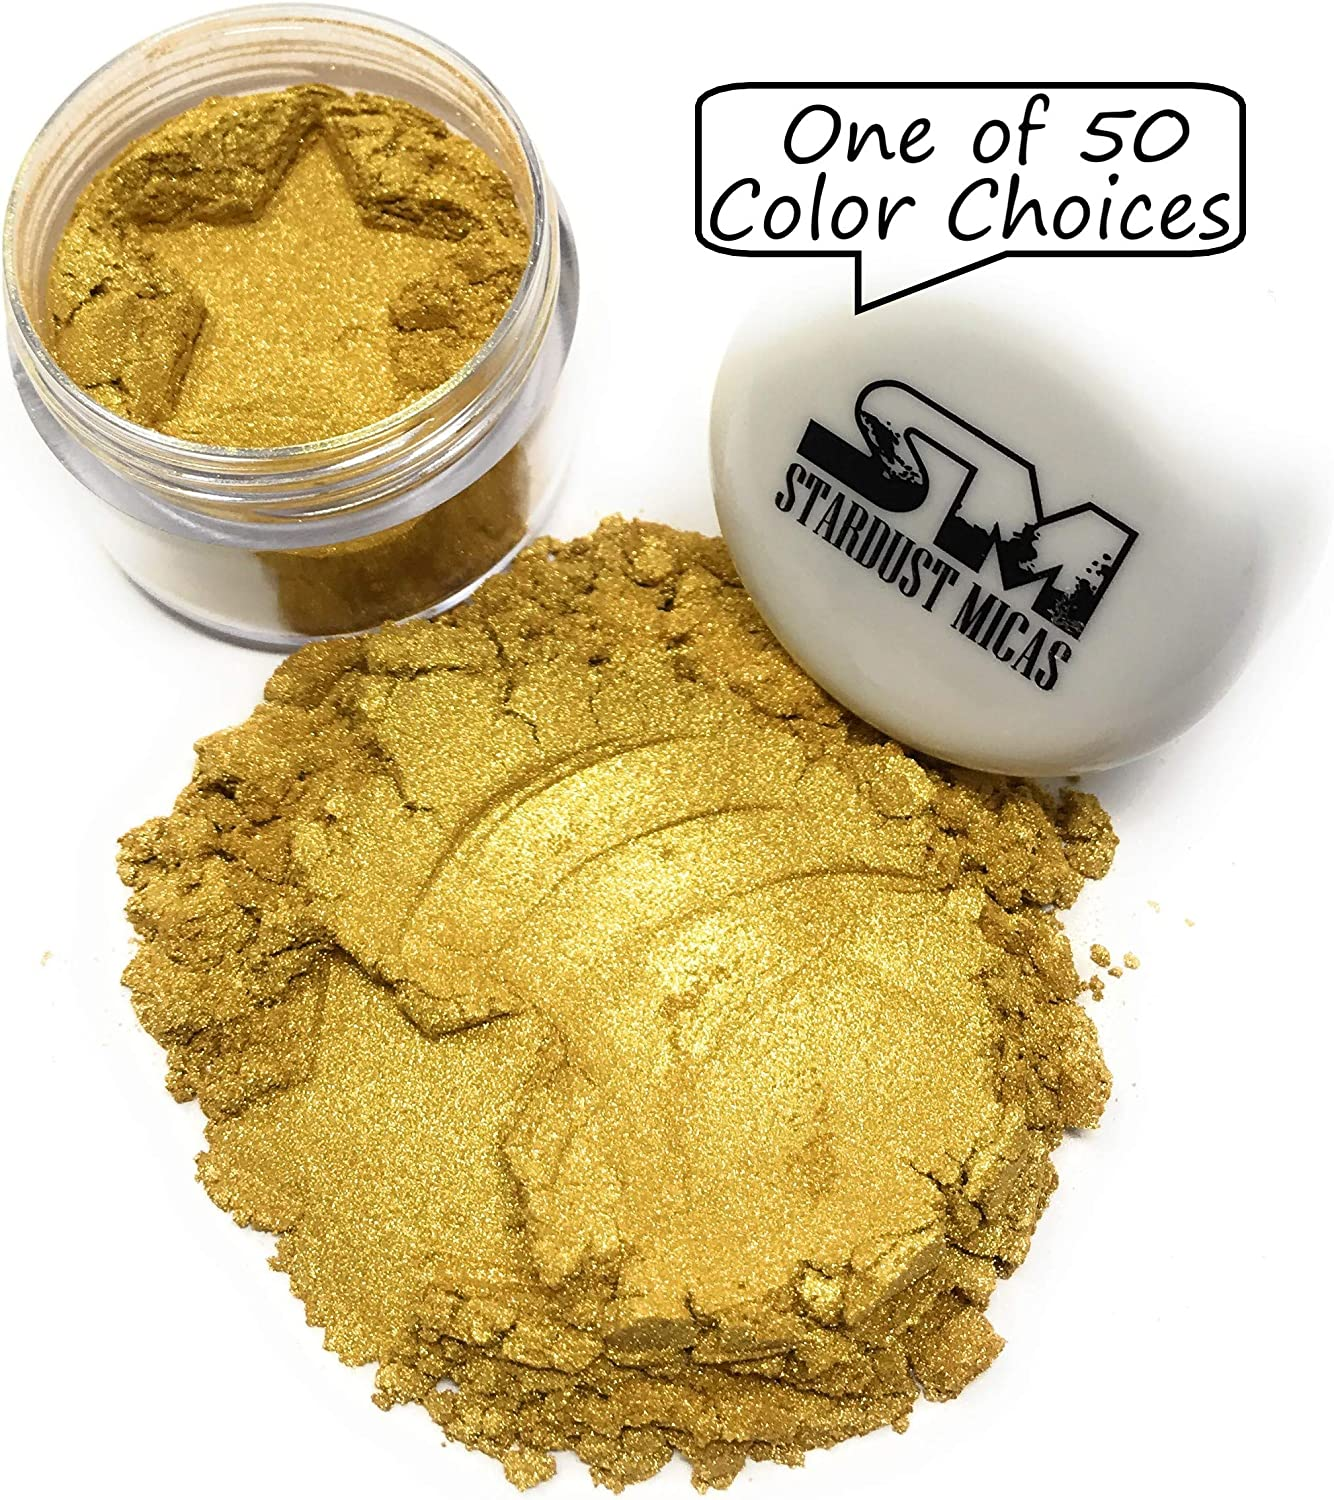 Stardust Micas Pigment Powder Cosmetic Grade Colorant for Makeup, Soap Making, Epoxy Resin, DIY Crafting Projects, Bright True Colors Stable Mica Batch Consistency Queens Gold